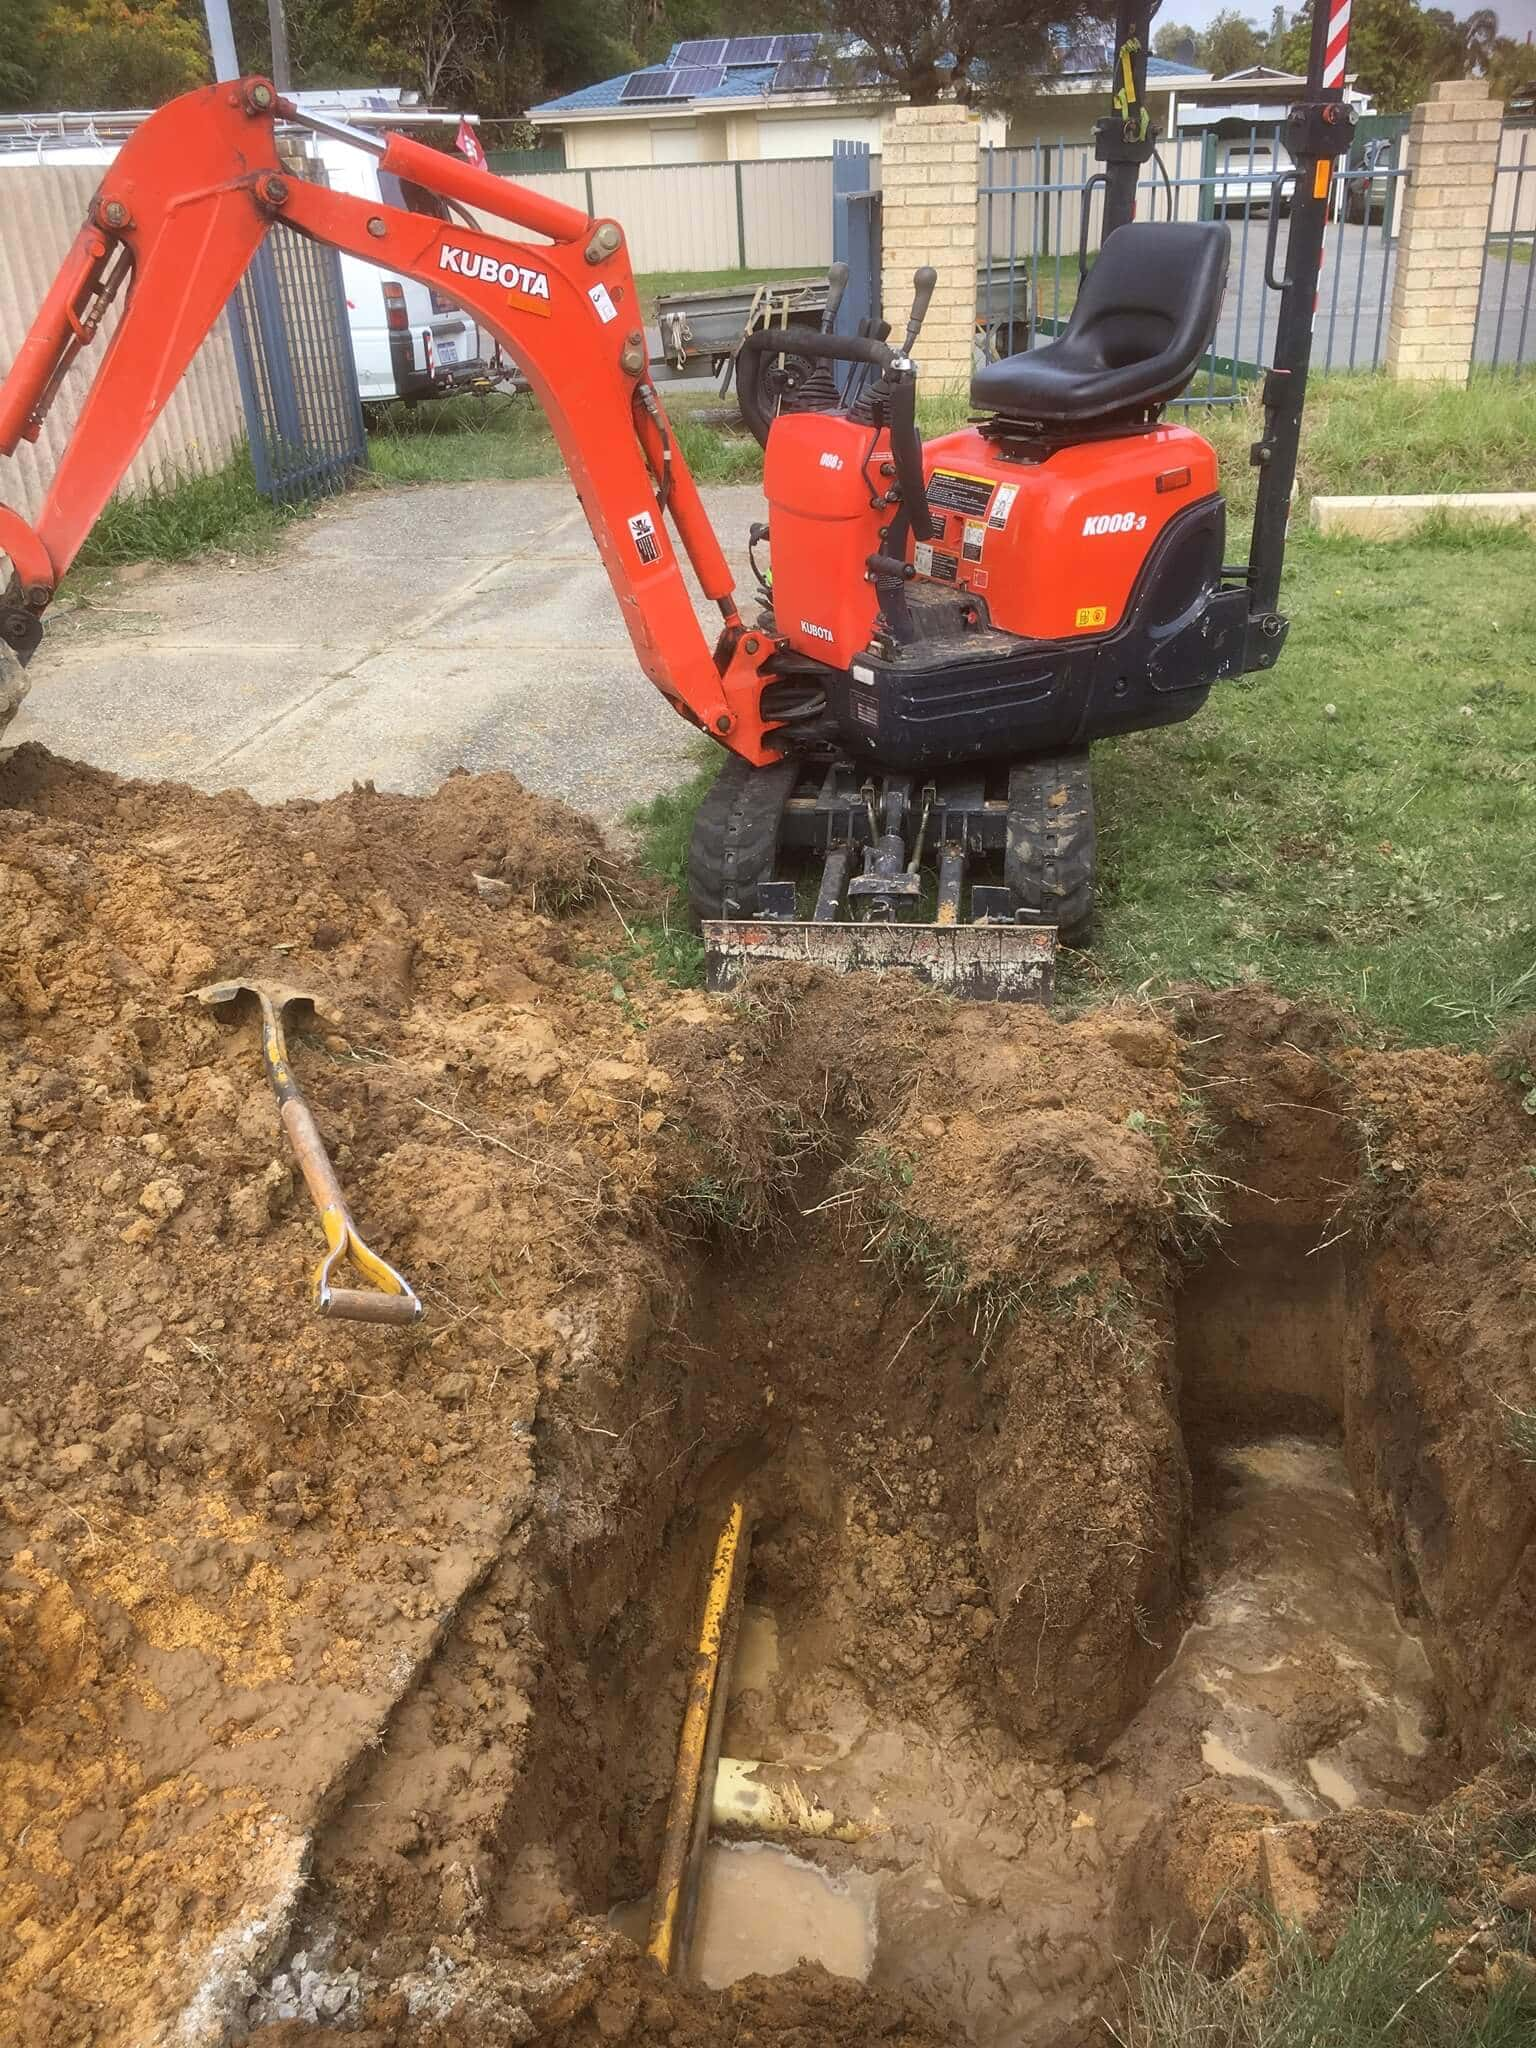 Everyday Plumbers Residential Locating Burst Pipes - Backhoe Digging in Action 2032